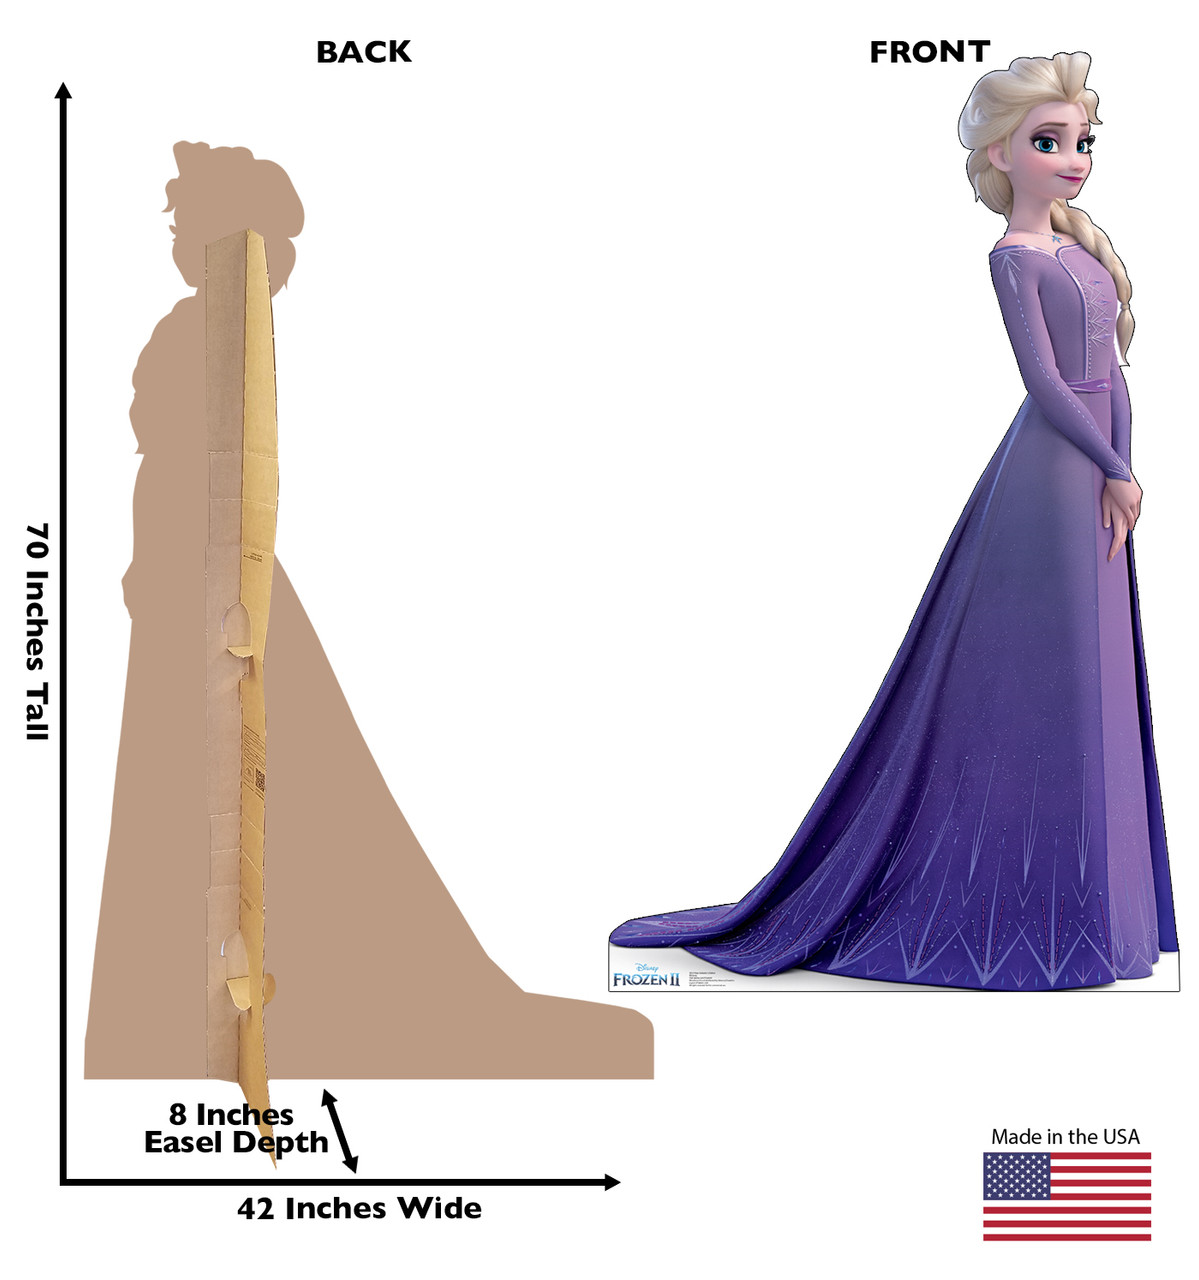 Life-size cardboard standee of Elsa (Collector's Edition) from Disney's Frozen 2 with back and front dimensions.